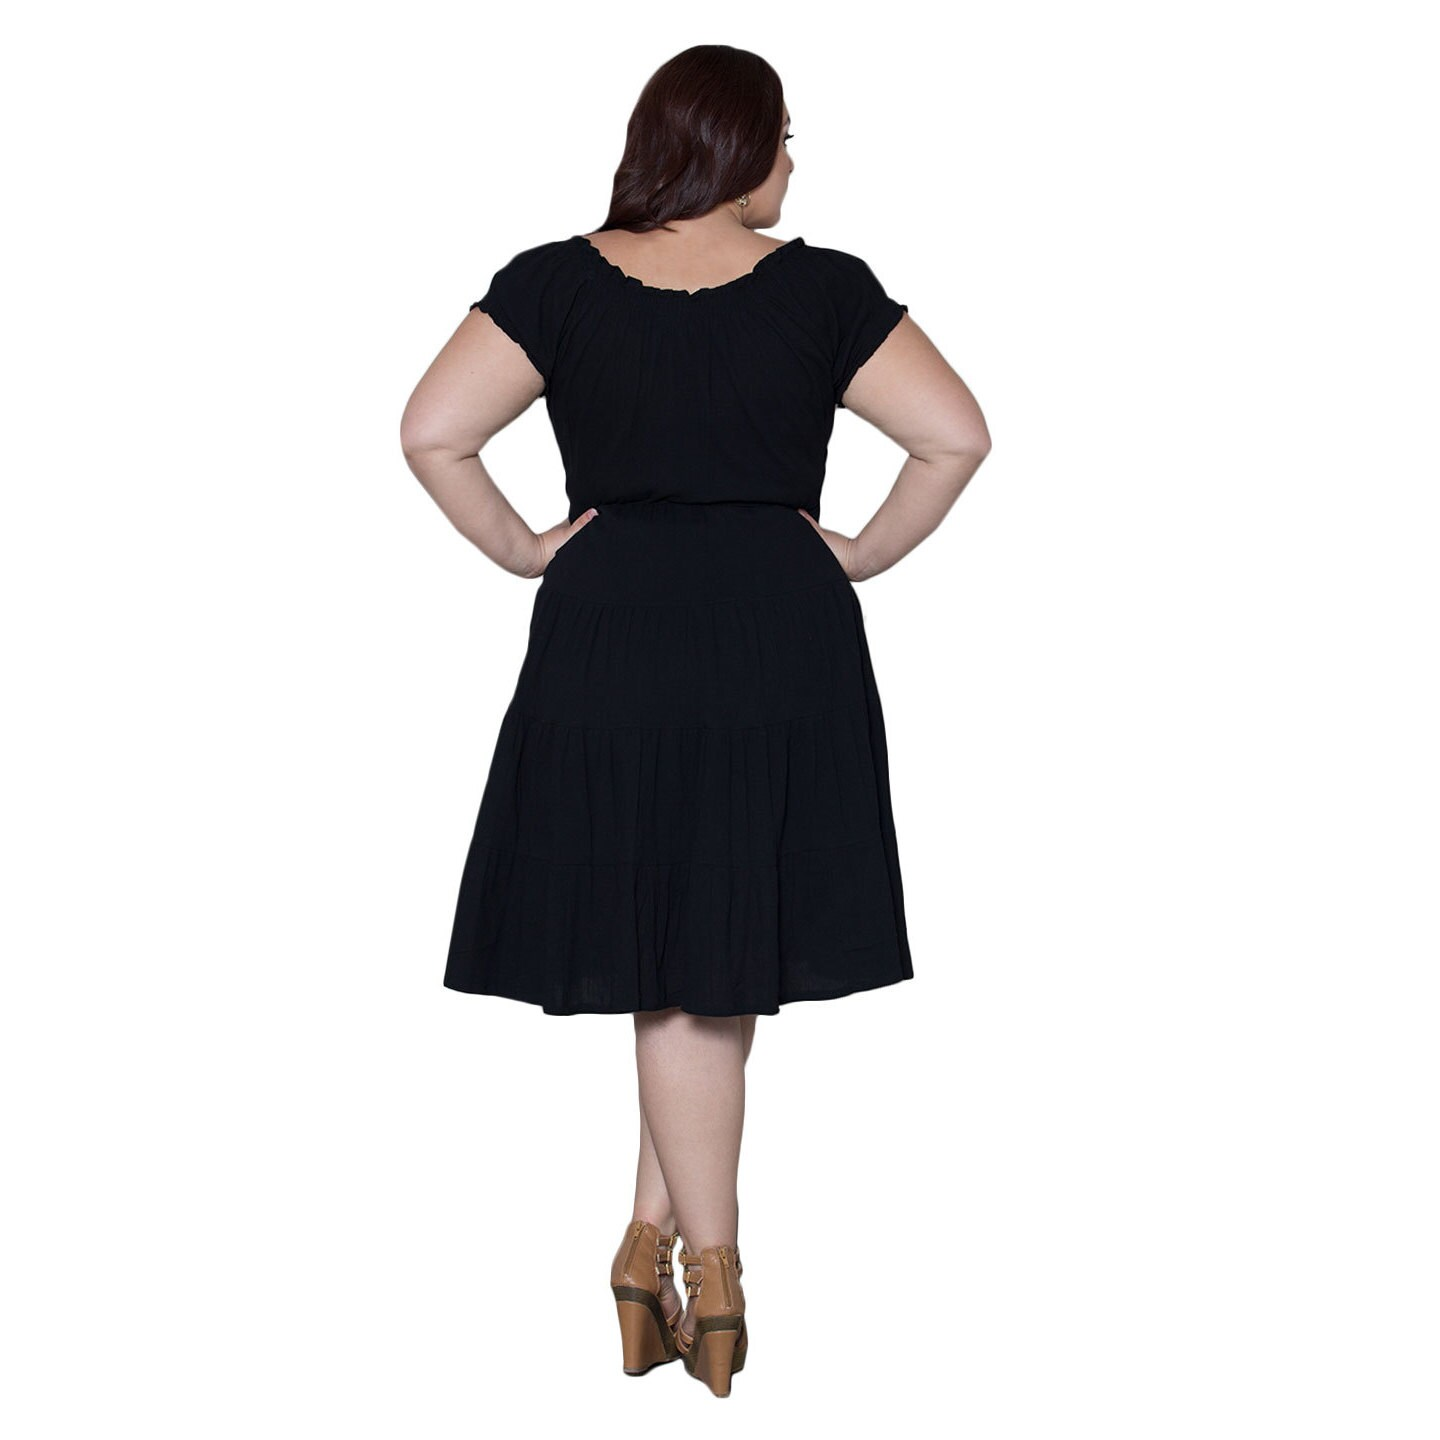 d455a8d0fe Shop Sealed with a Kiss Women s Plus Size  Soleil  Gauze Dress - Free  Shipping Today - Overstock - 10203159